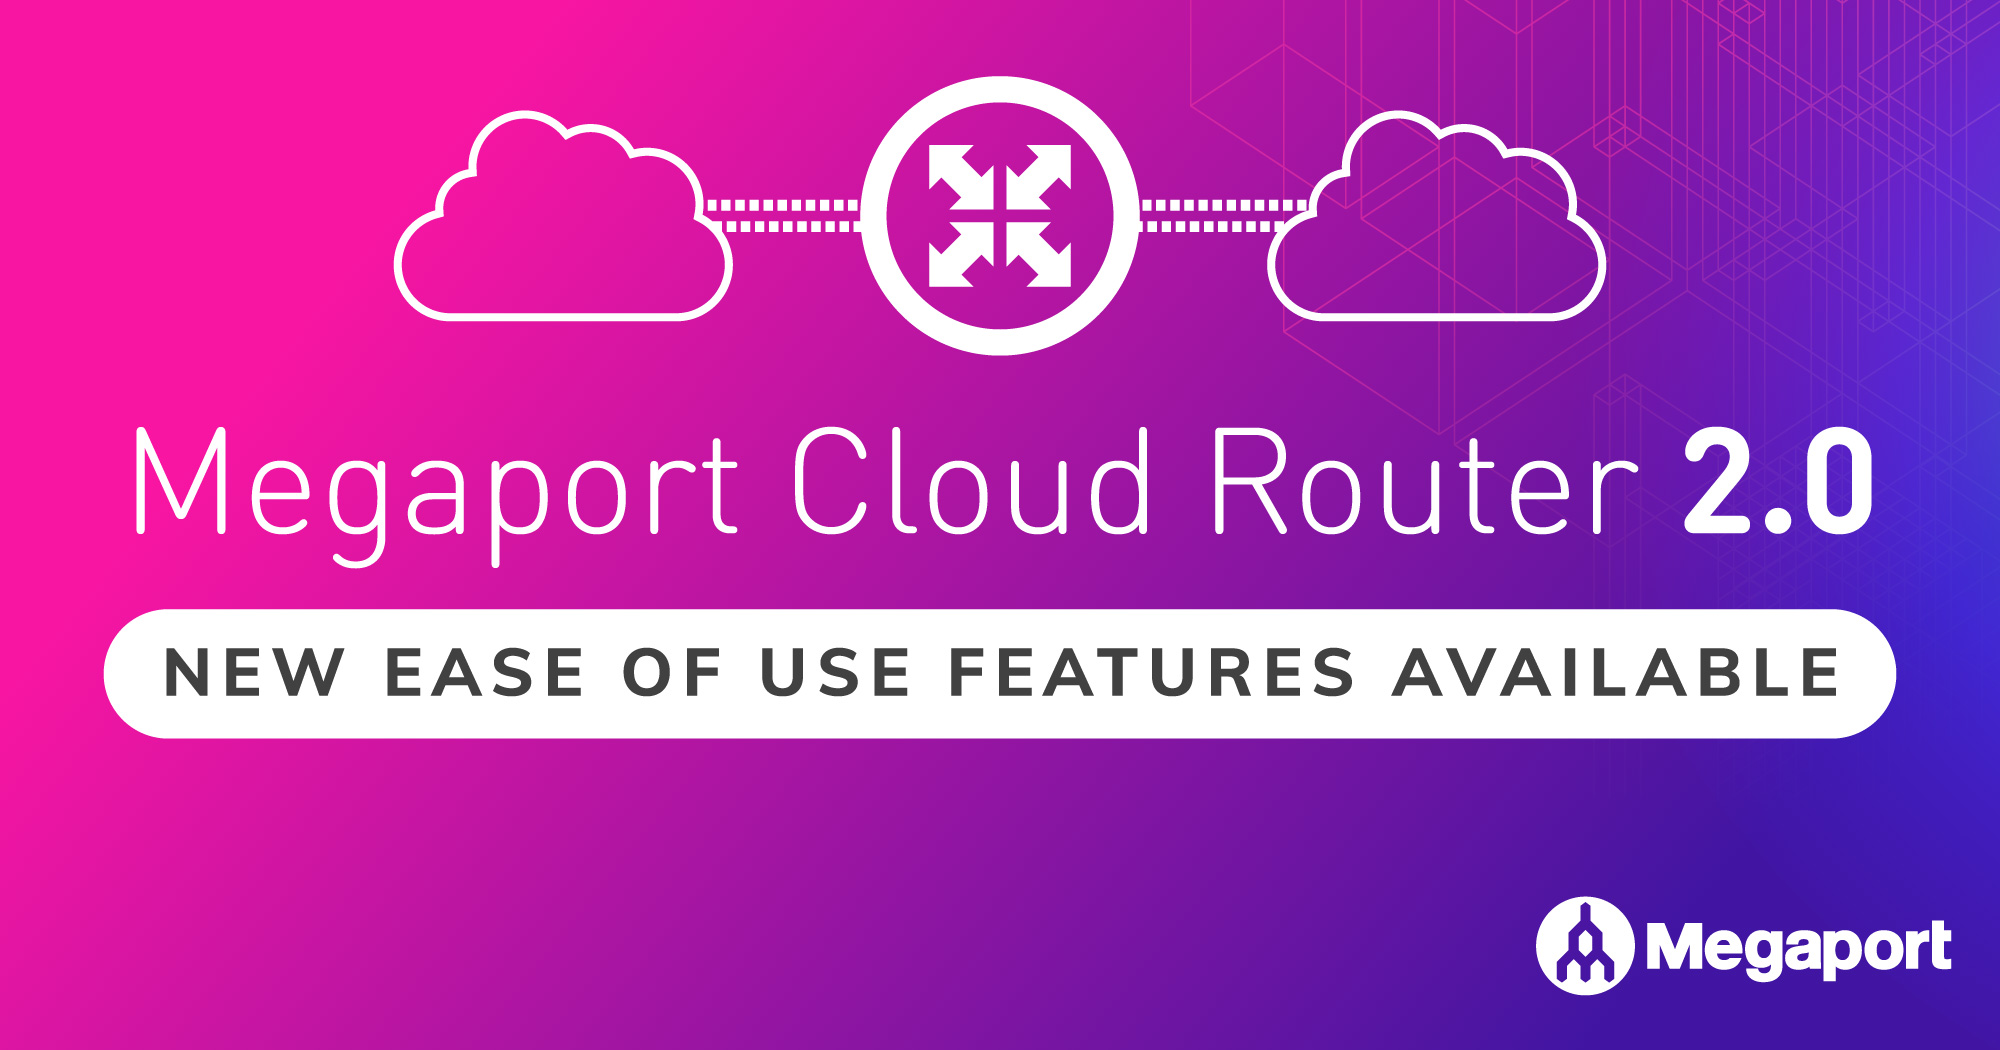 Configure Networks the Easy Way with Megaport Cloud Router